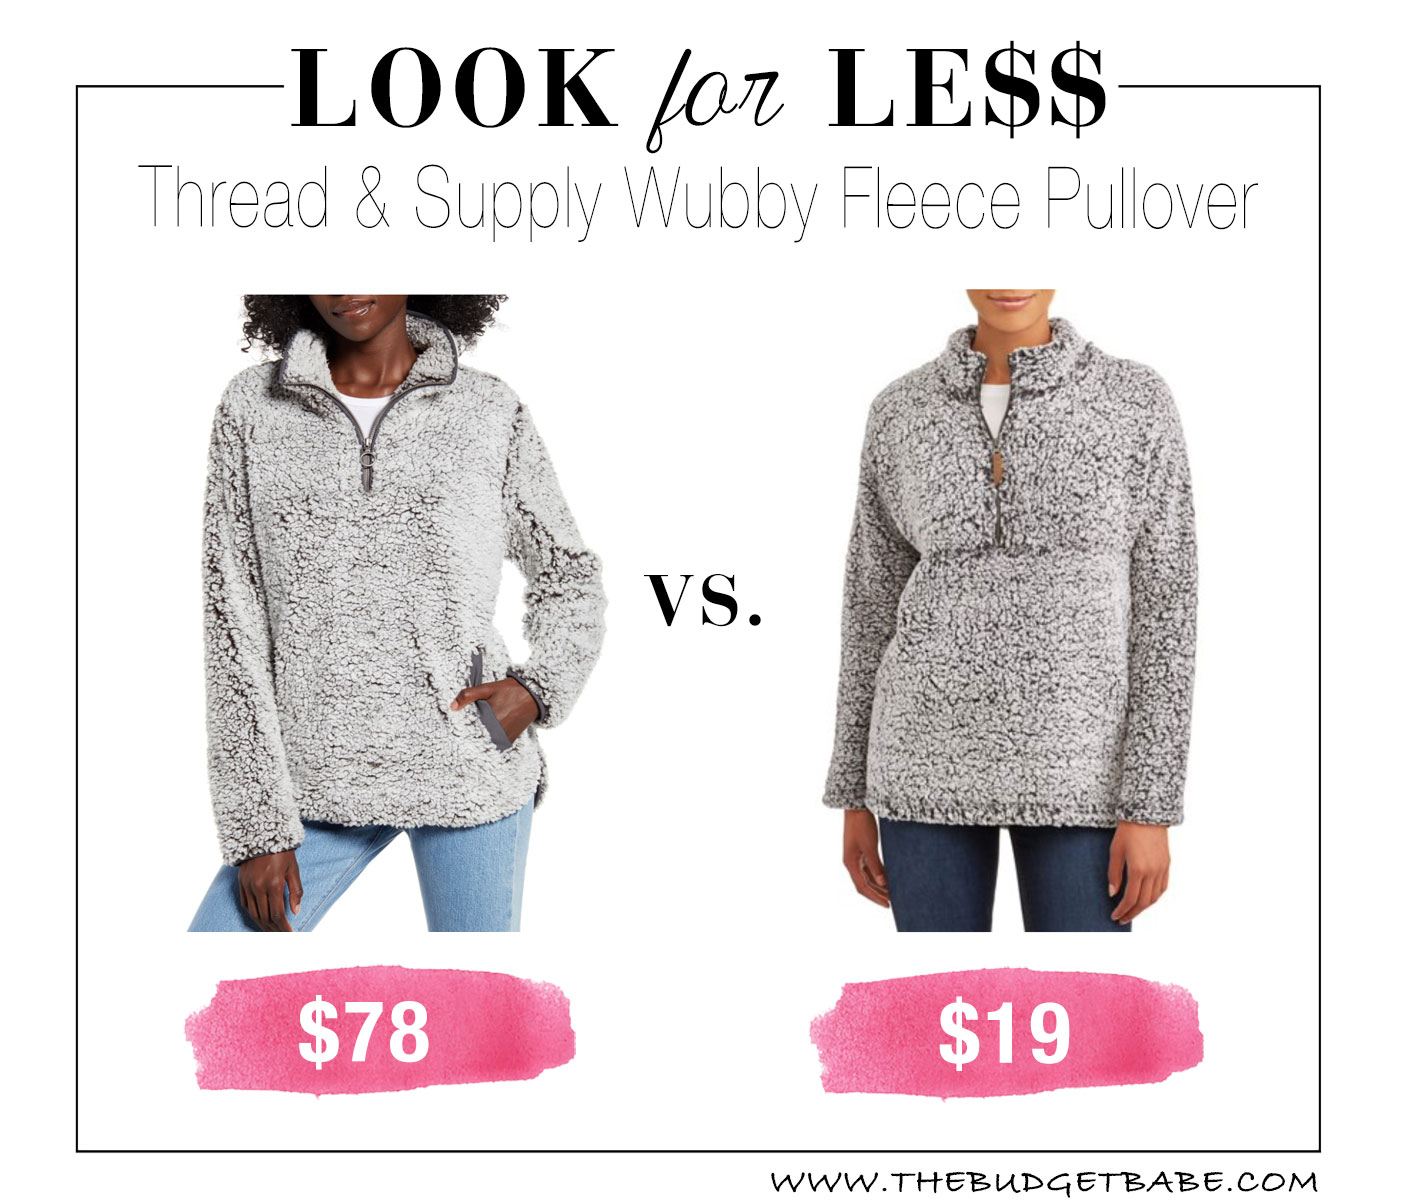 Wubby fleece dupe at Walmart just $19!